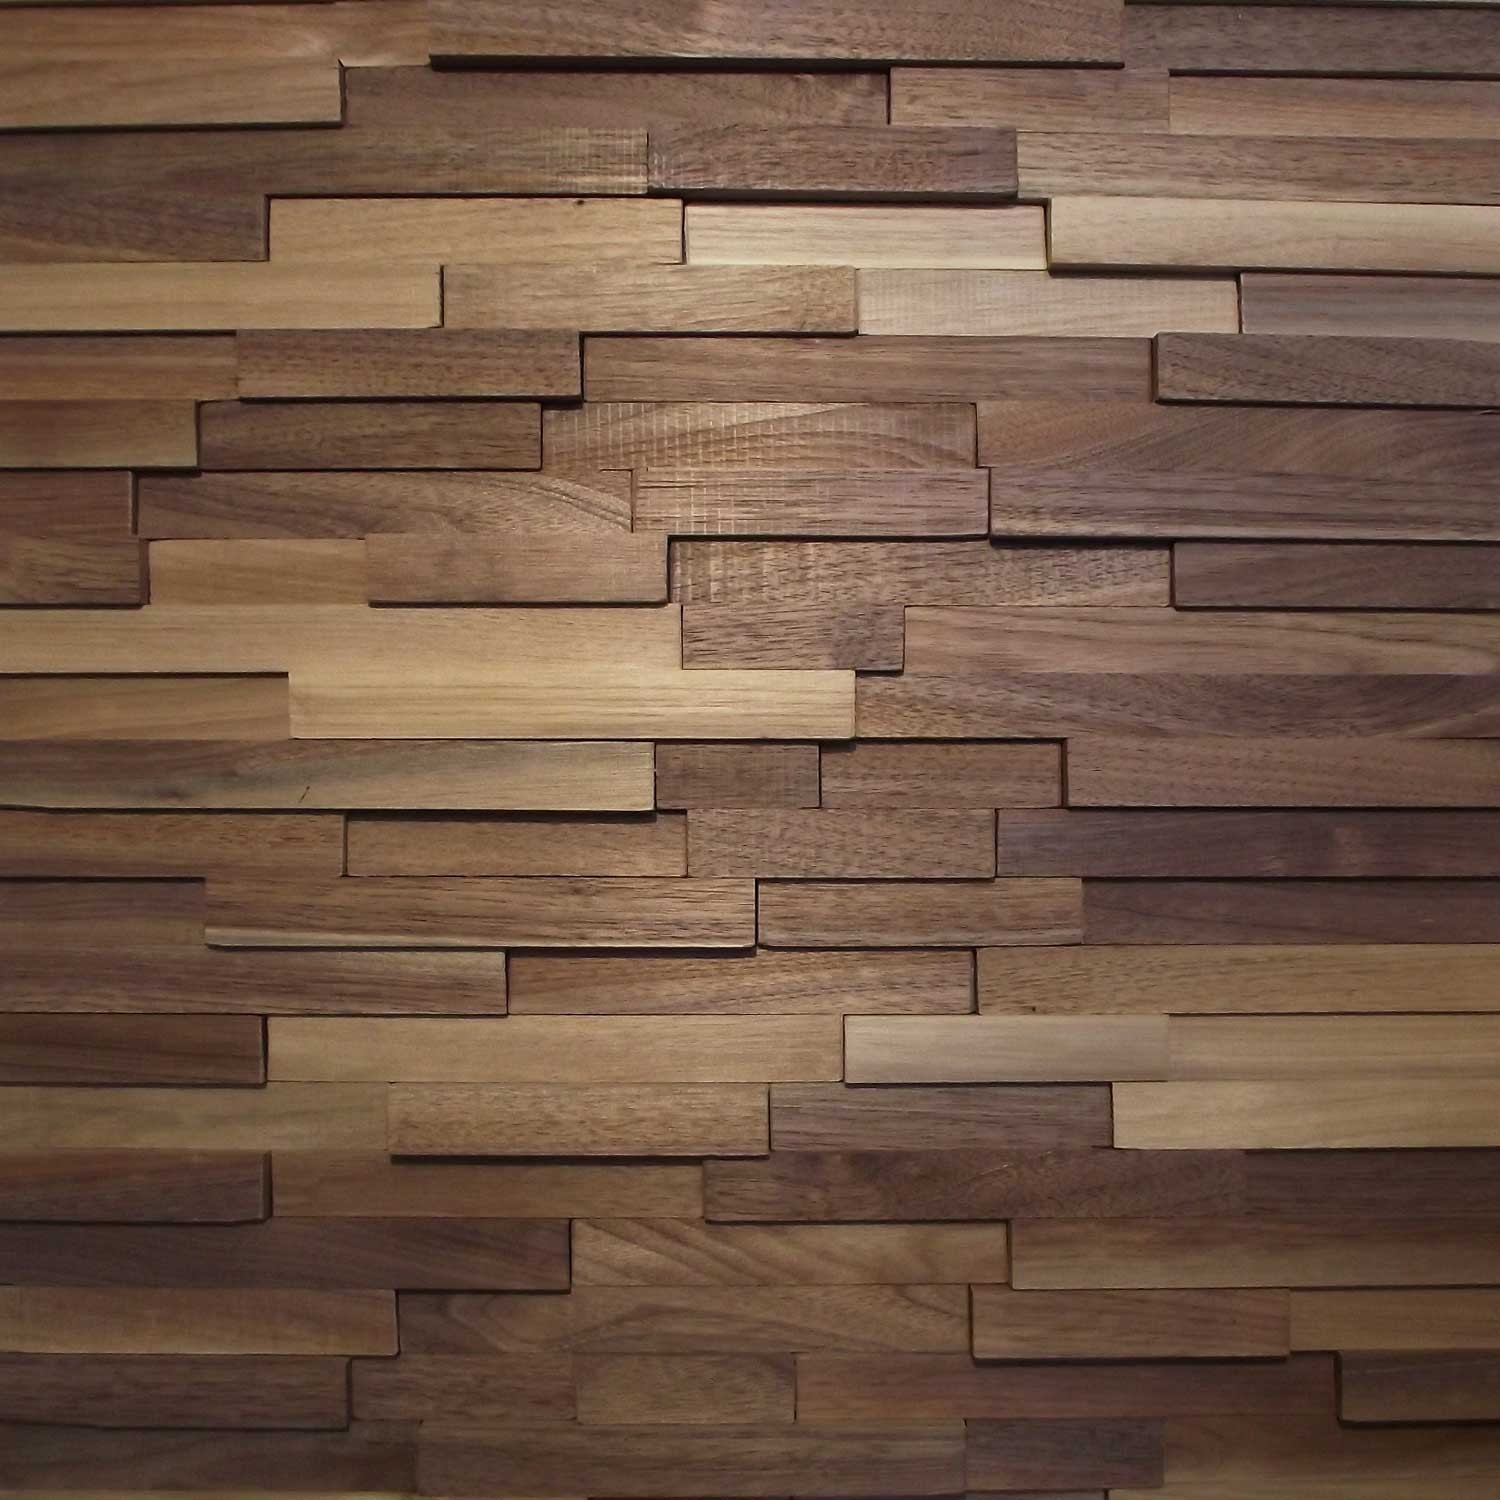 Create Accent Wall With Wood Panel India: David Barr's Sarasota And Venice Real Estate Blog: Home